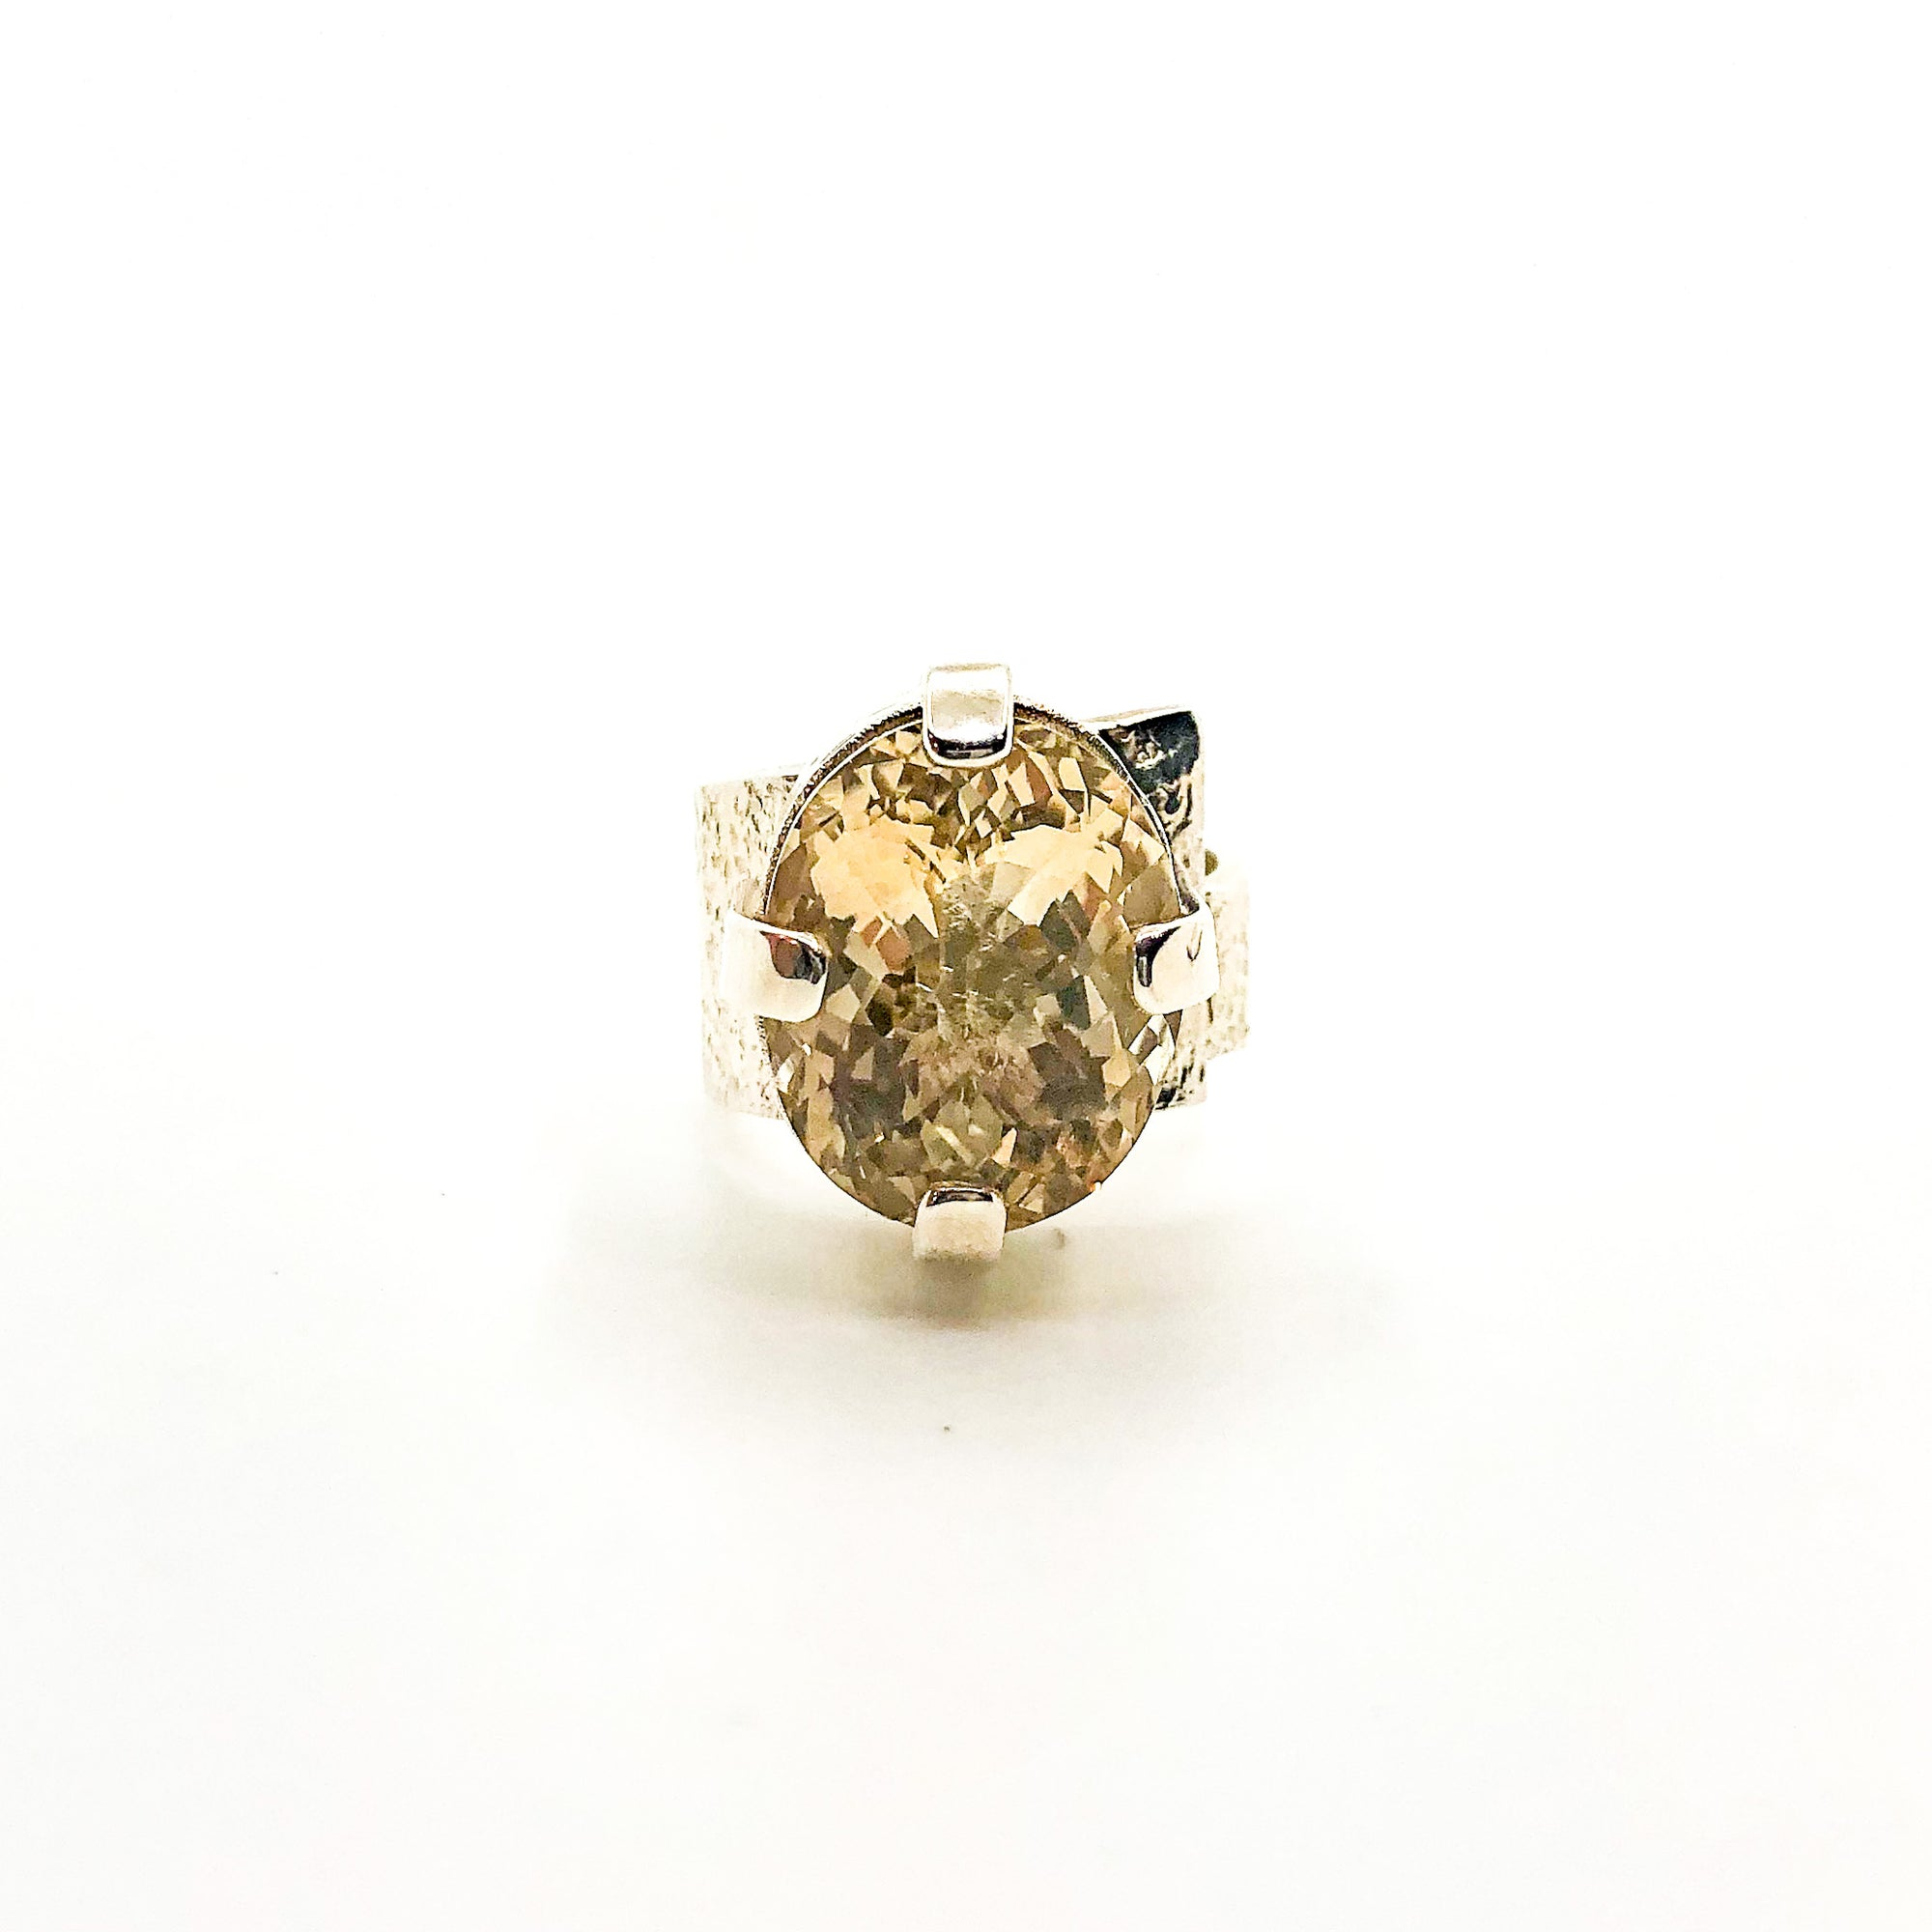 size 7 Big Honker Lynne Ring with Faceted Citrine by Judie Raiford